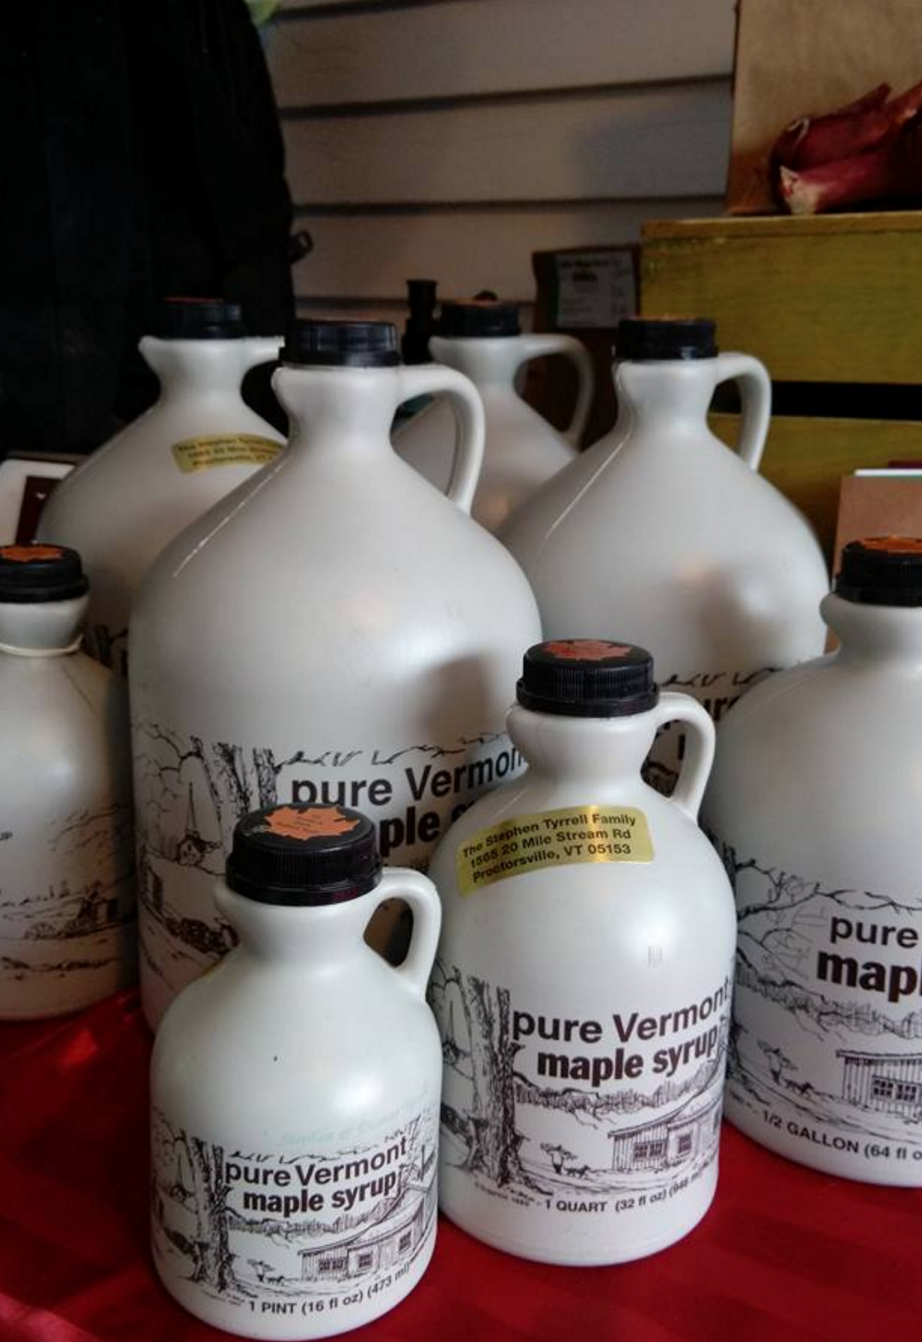 Maple Syrup - Tyrrell Family Maple Syrup, 2017 Harvest